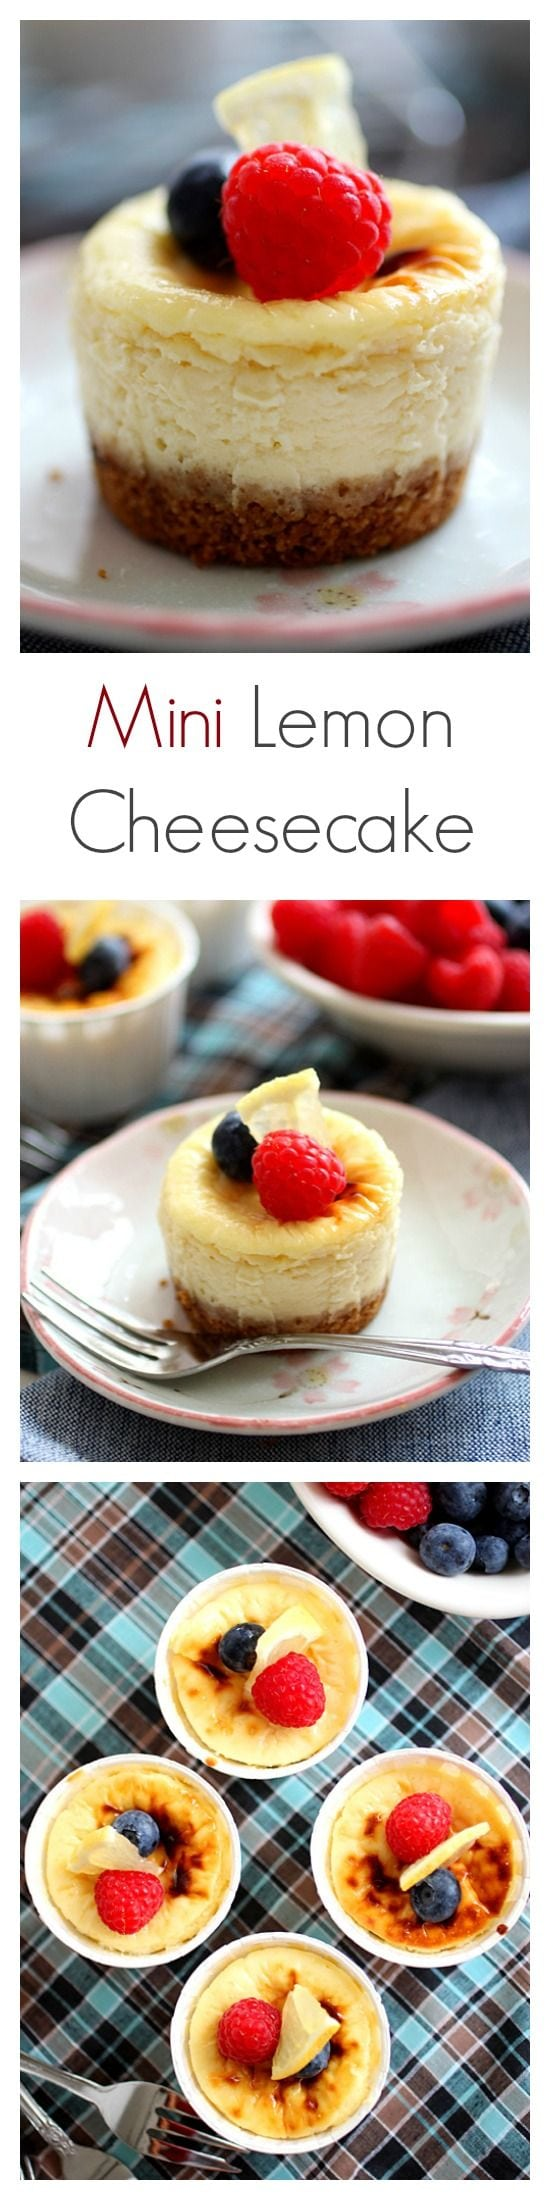 Mini Lemon Cheesecake | Easy Delicious Recipes